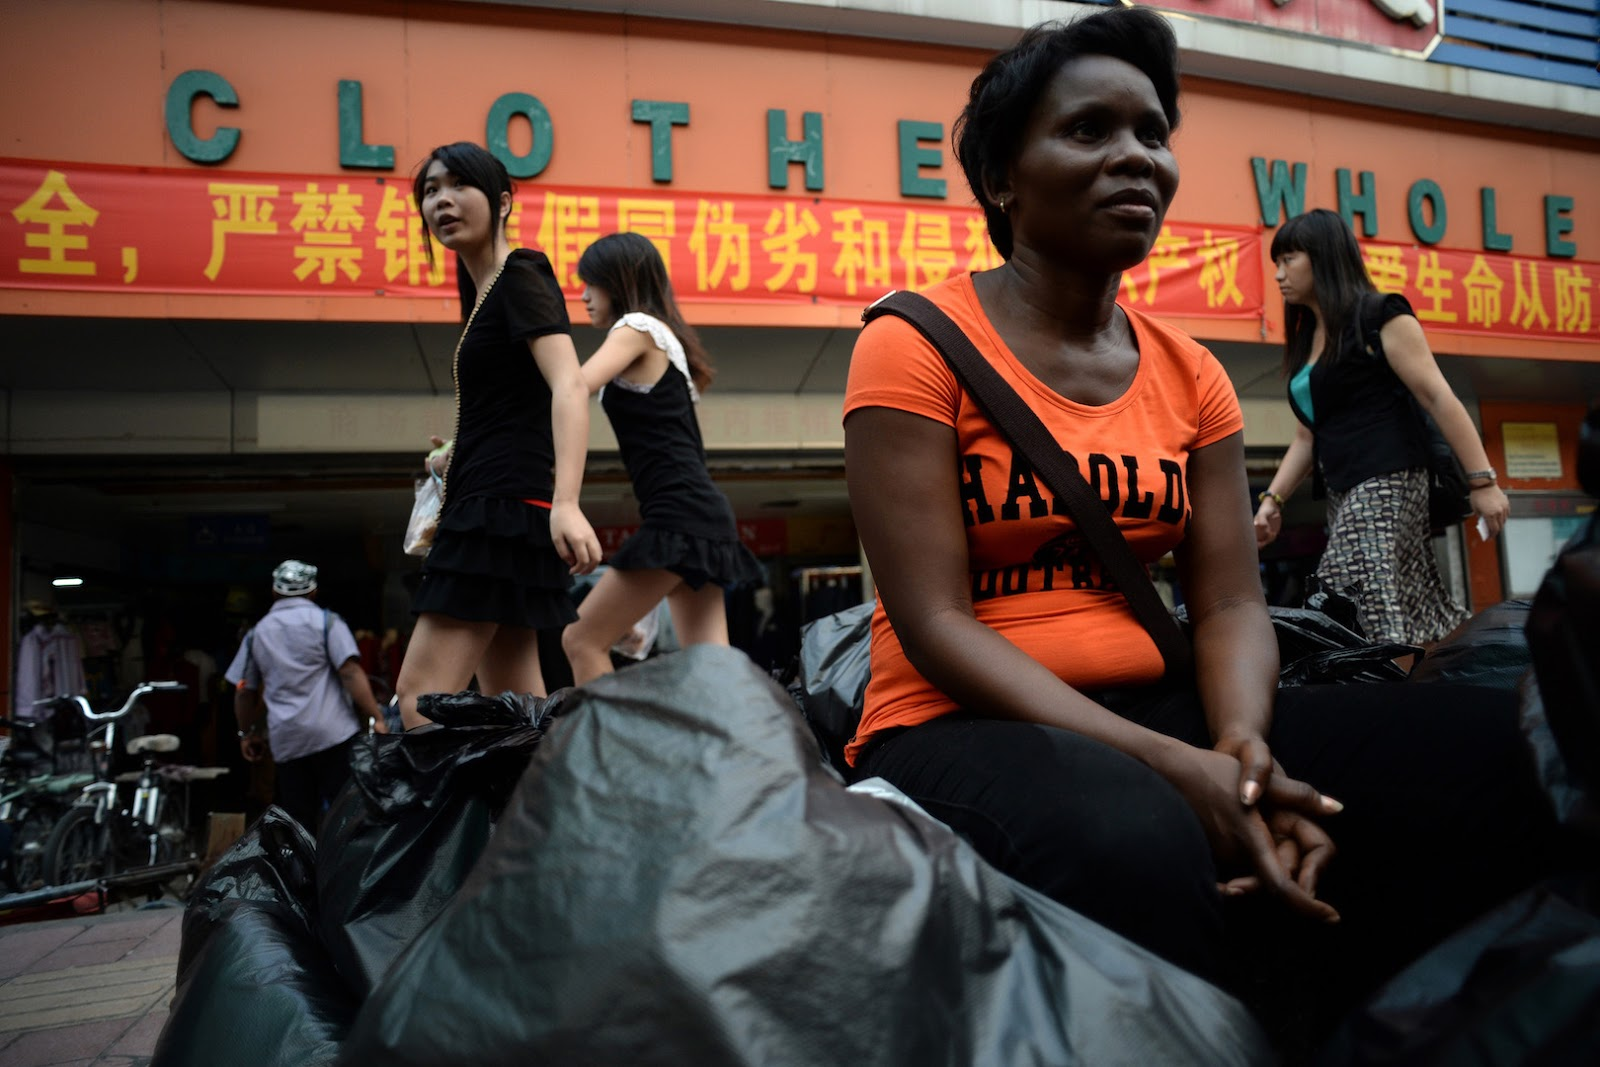 Africans In China Stranded In Streets As Landlords Claim They Spread COVID-19